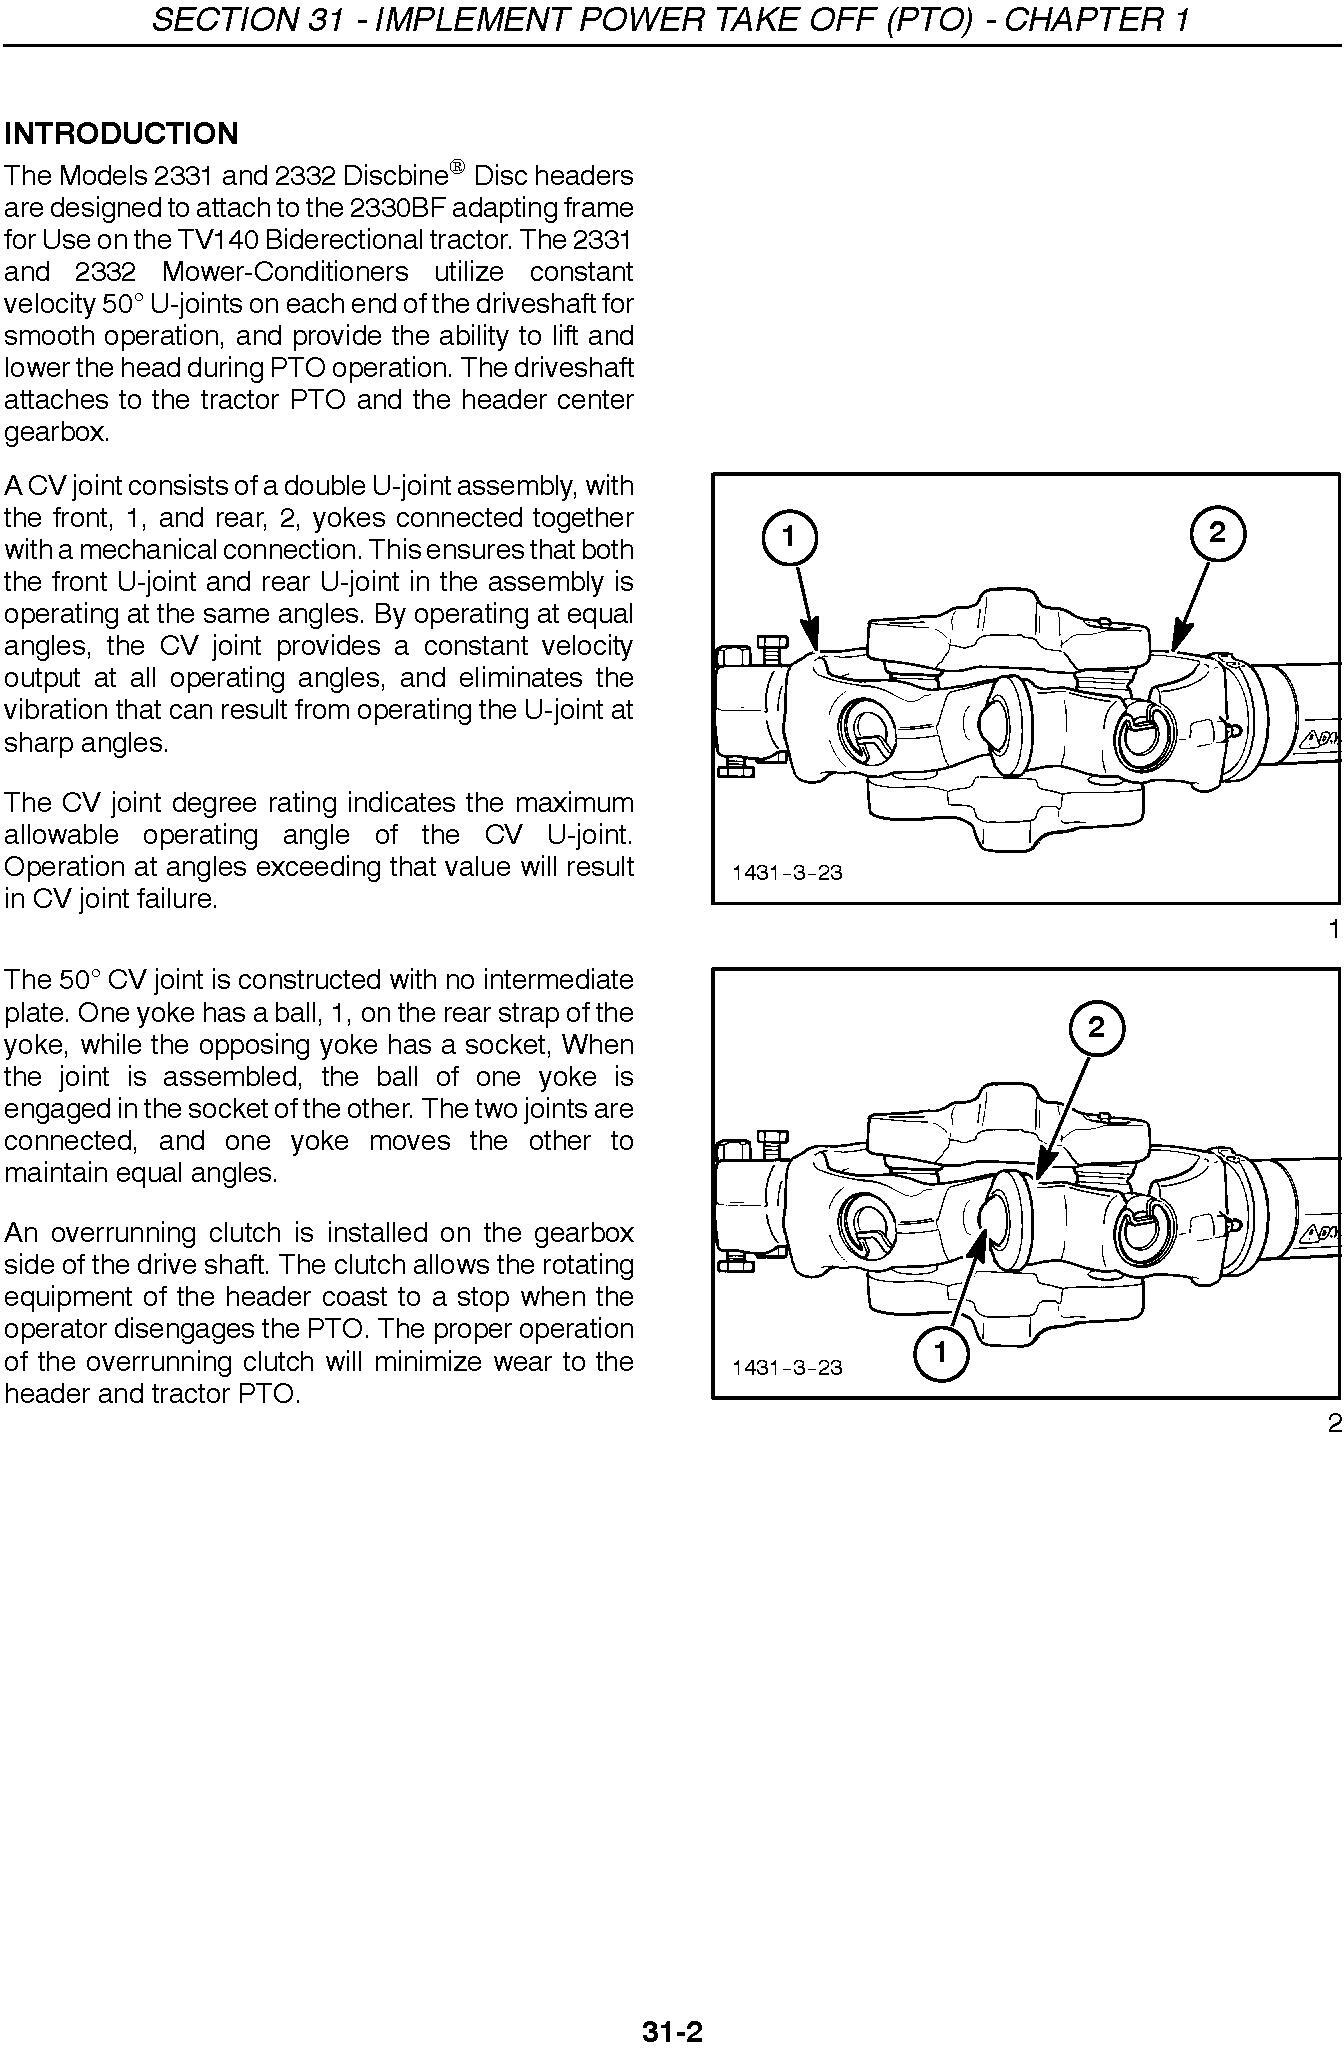 New Holland 2331, 2332 Disc Header for TV140 Service Manual - 1